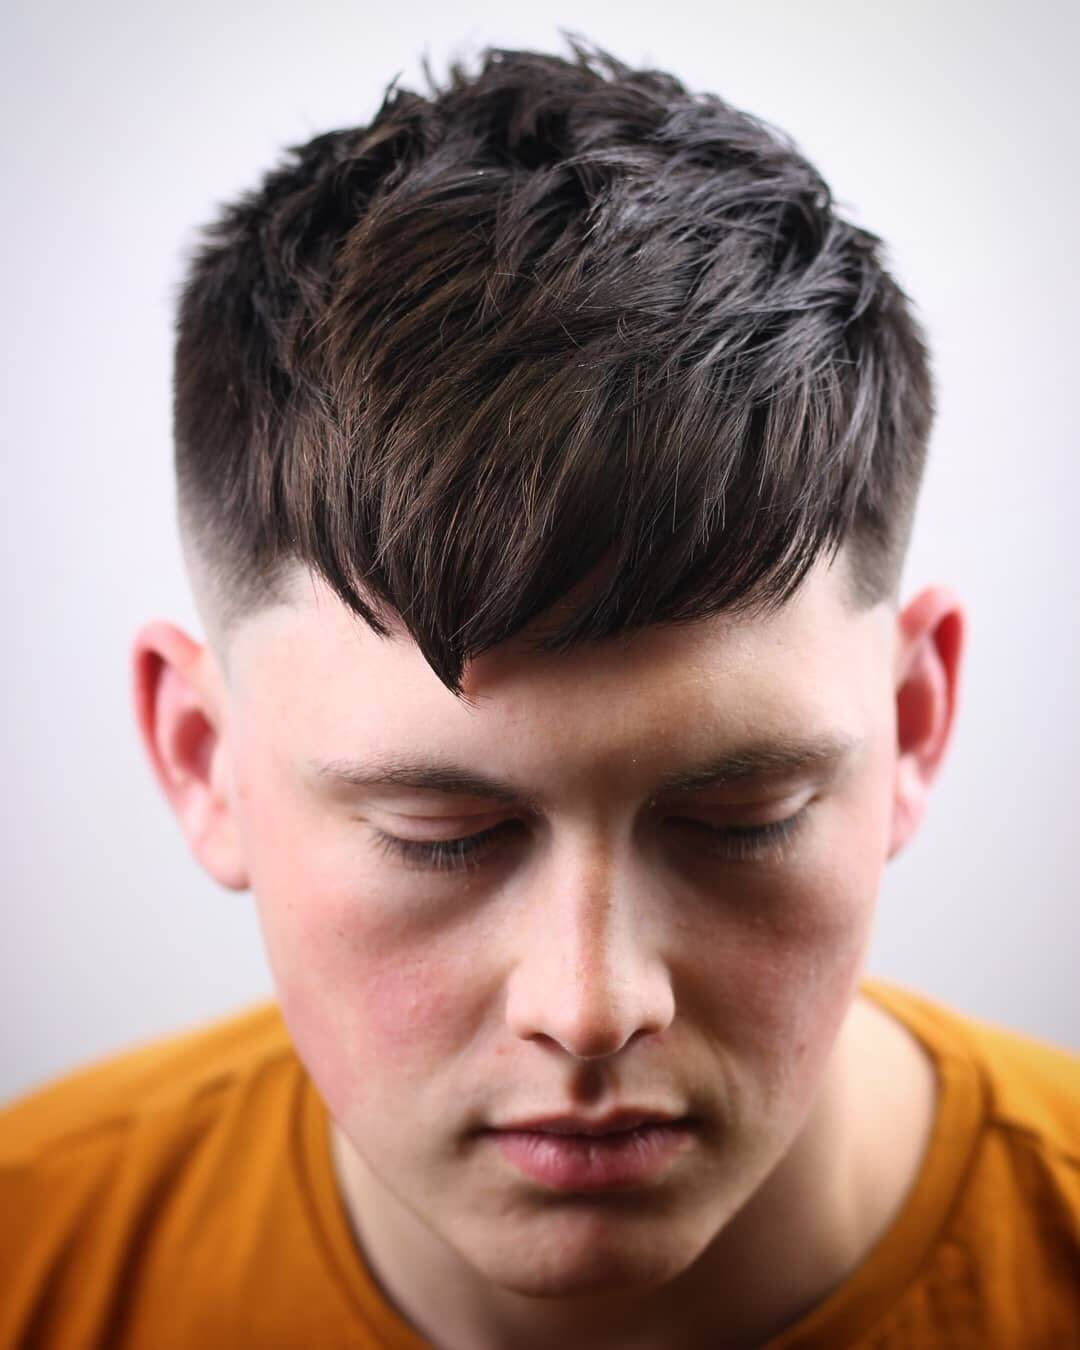 Textured Haircut with Fringe